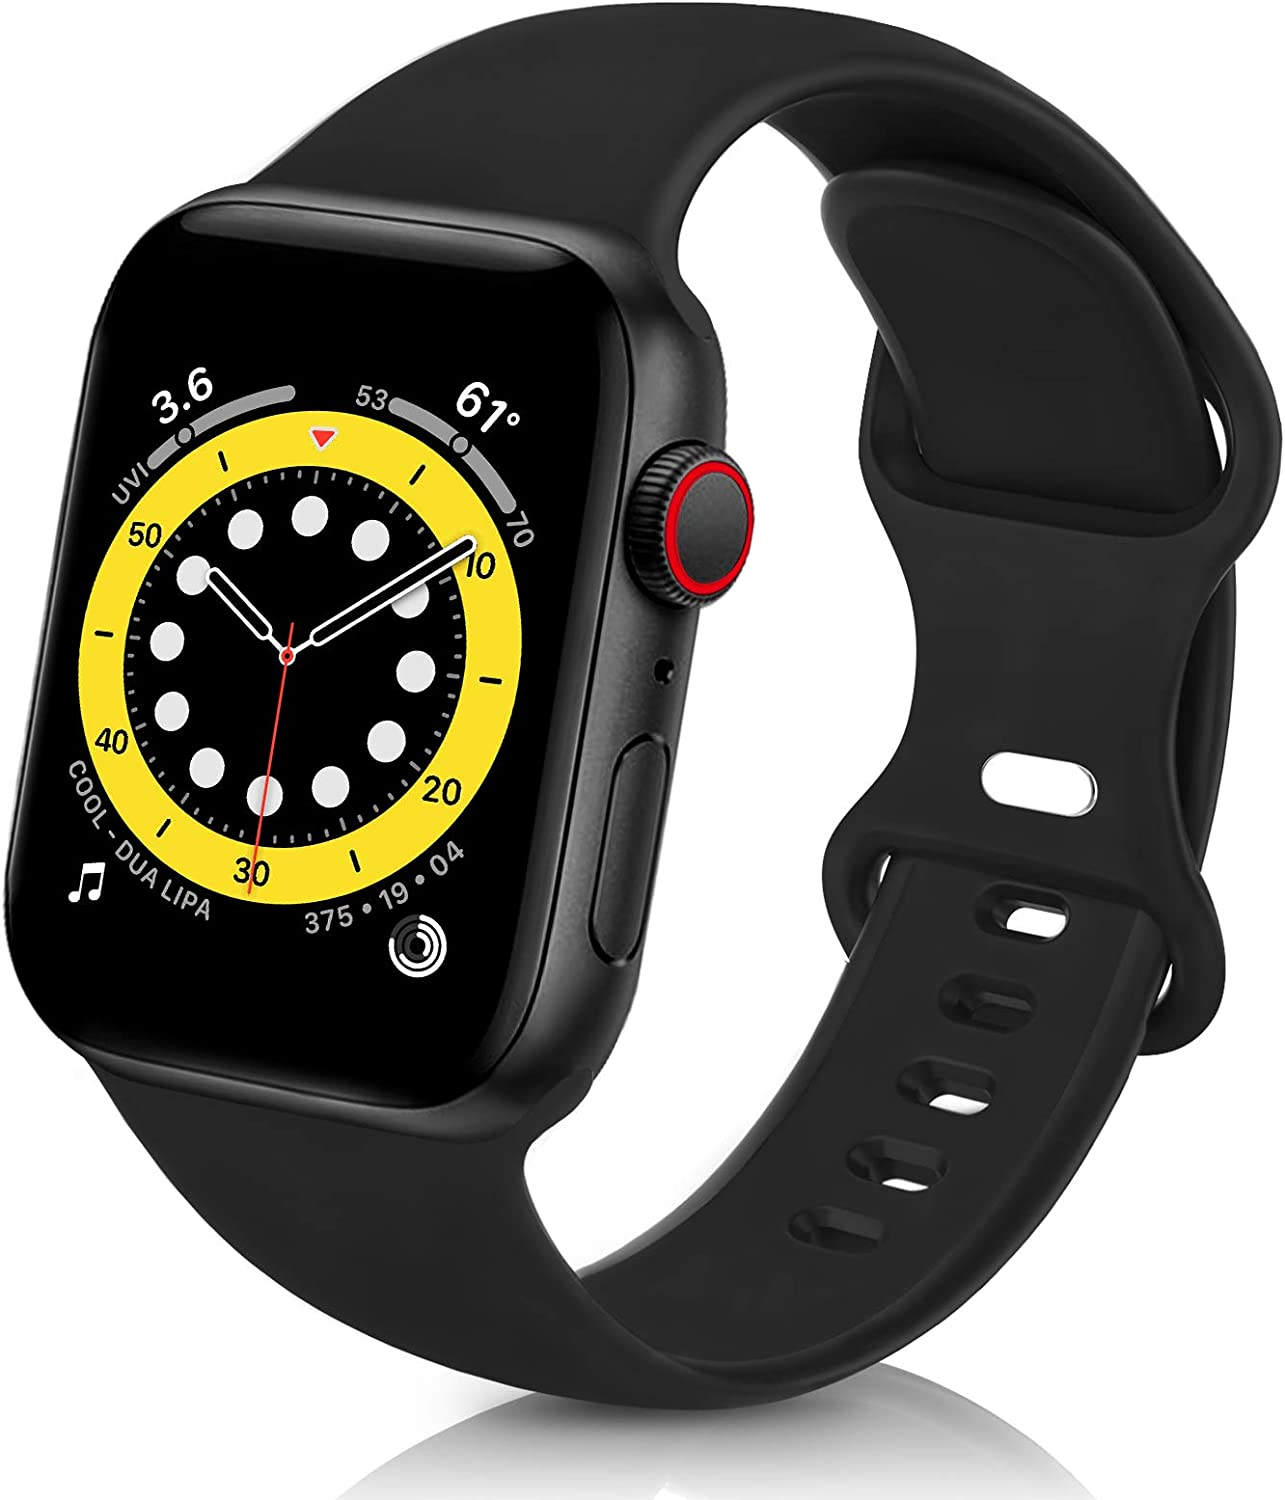 ZALAVER Bands Compatible with Apple Watch Band 38mm 40mm, Soft Silicone Sport Replacement Band Compatible with iWatch Series 6 5 4 3 2 1 Women Men Black 38mm/40mm M/L